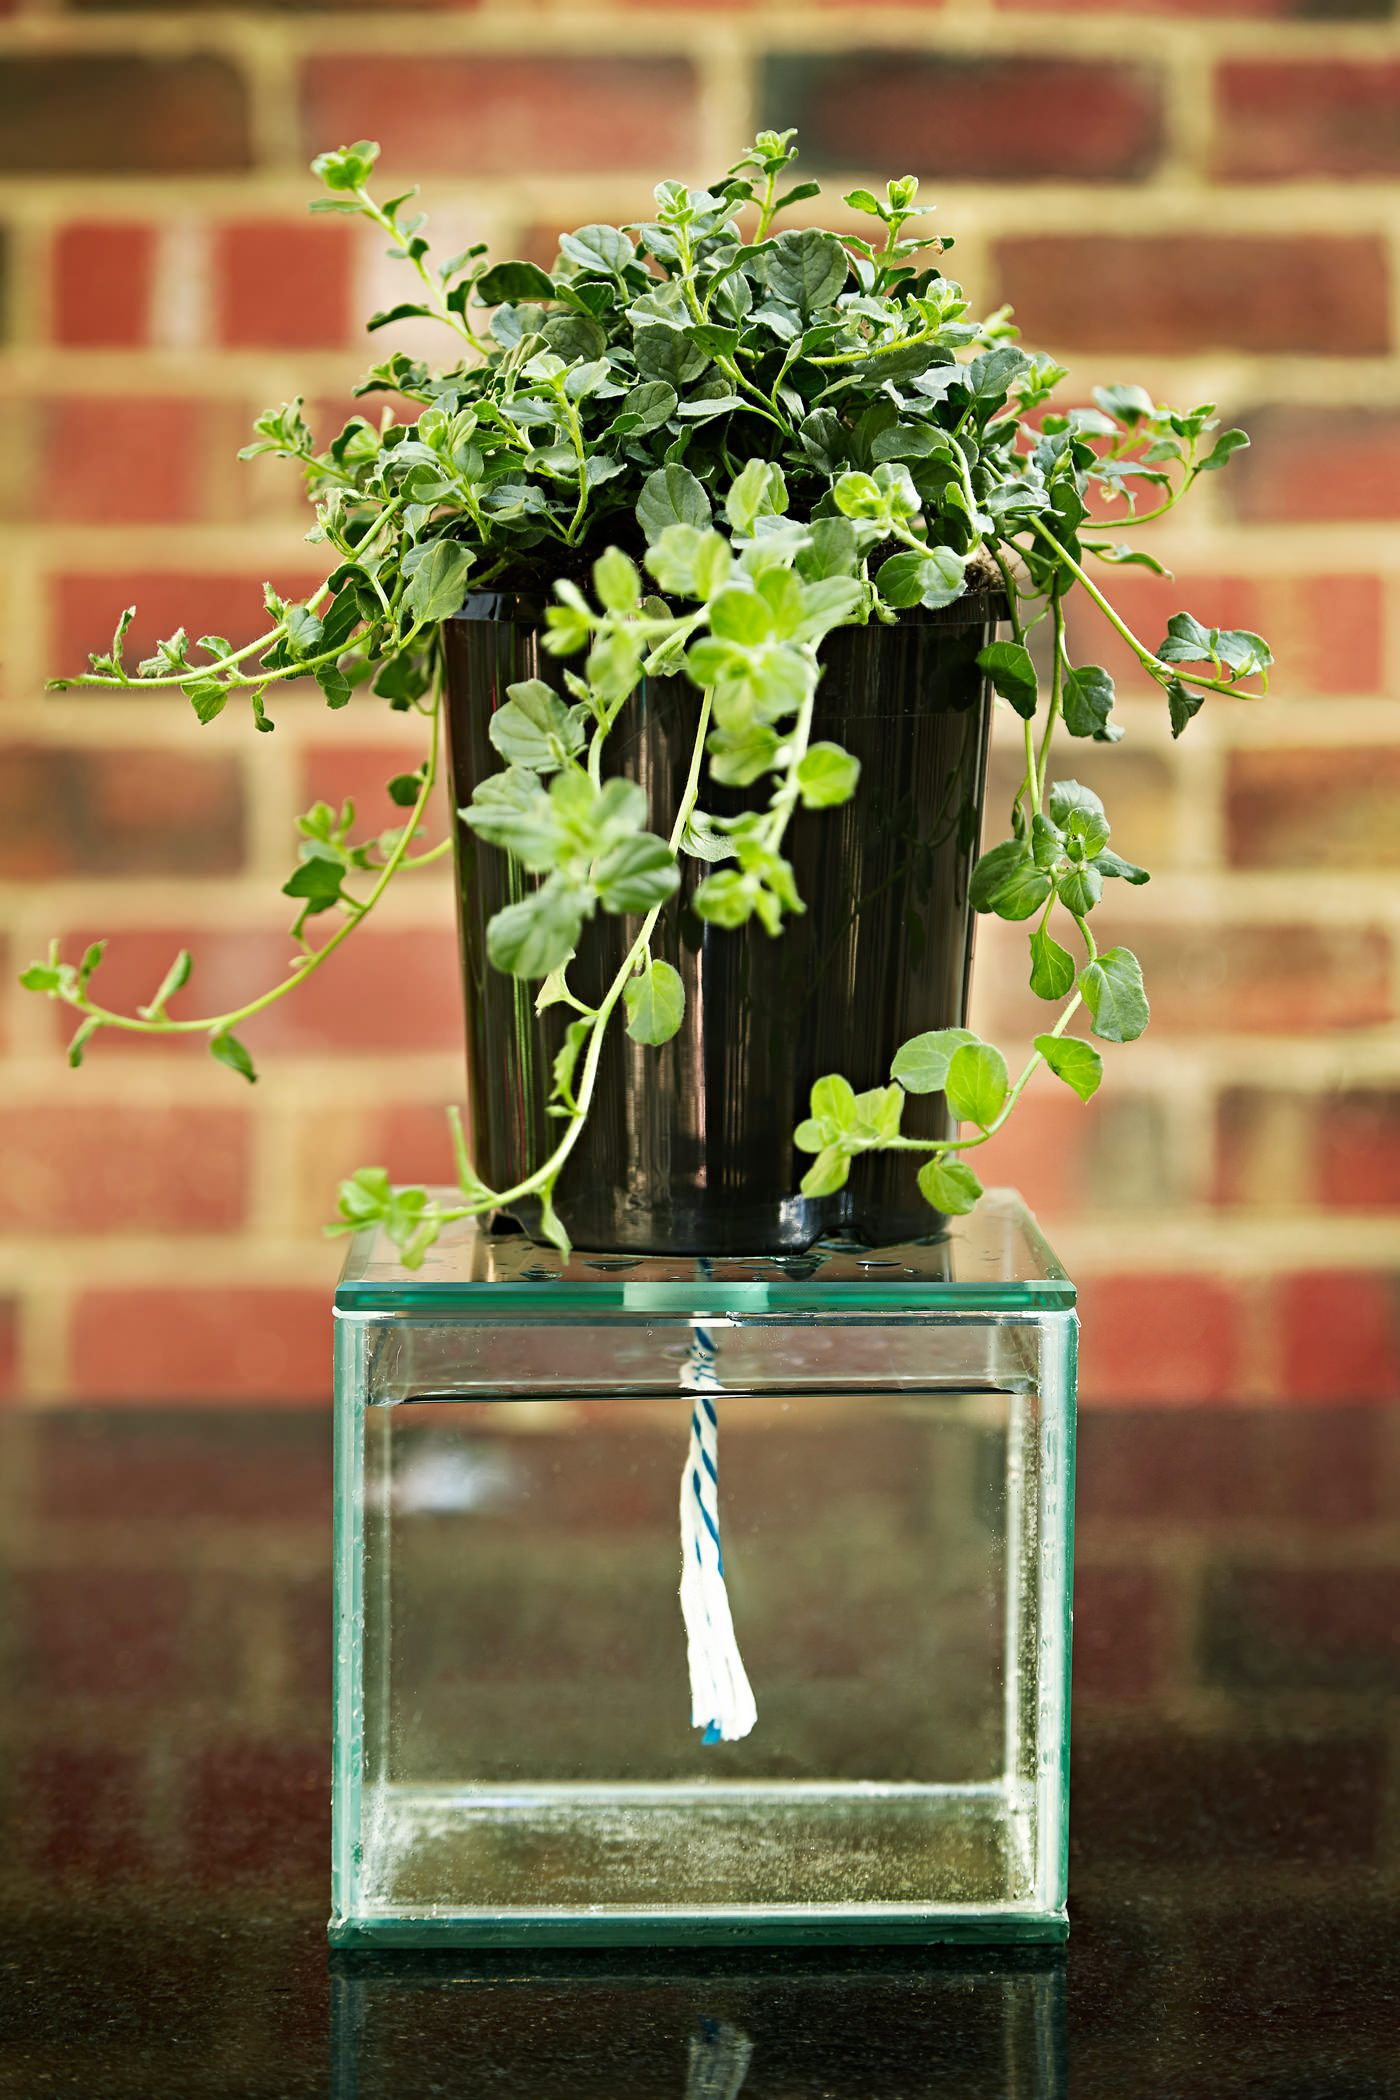 At keystone gardens in australia you can get the self watering pot at keystone gardens in australia you can get the self watering pot to grow plants workwithnaturefo